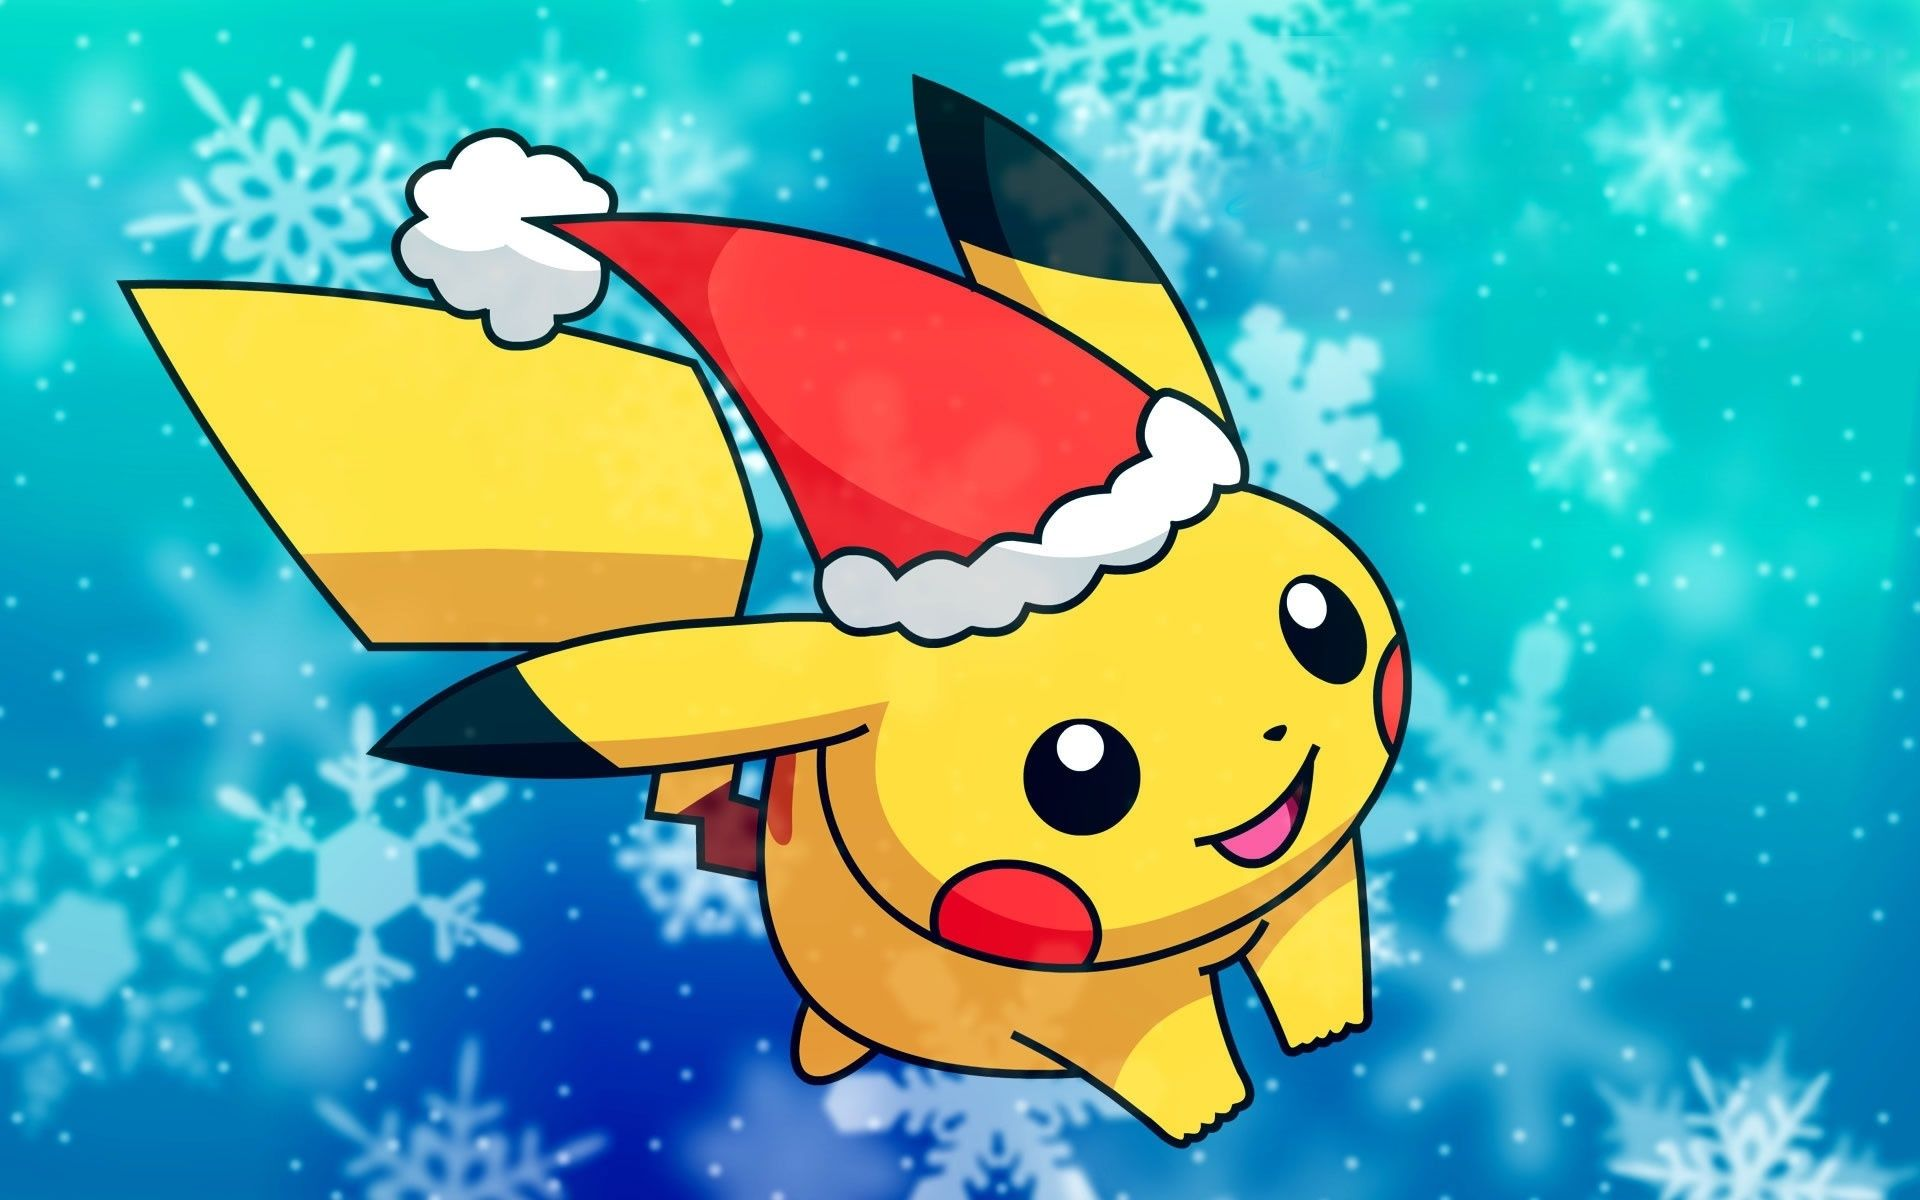 Download Wallpaper Pikachu Pokemon Yellow Free Desktop Wallpaper In The Resolution 1920x1200 P Cute Pokemon Wallpaper Pikachu Wallpaper Christmas Pokemon